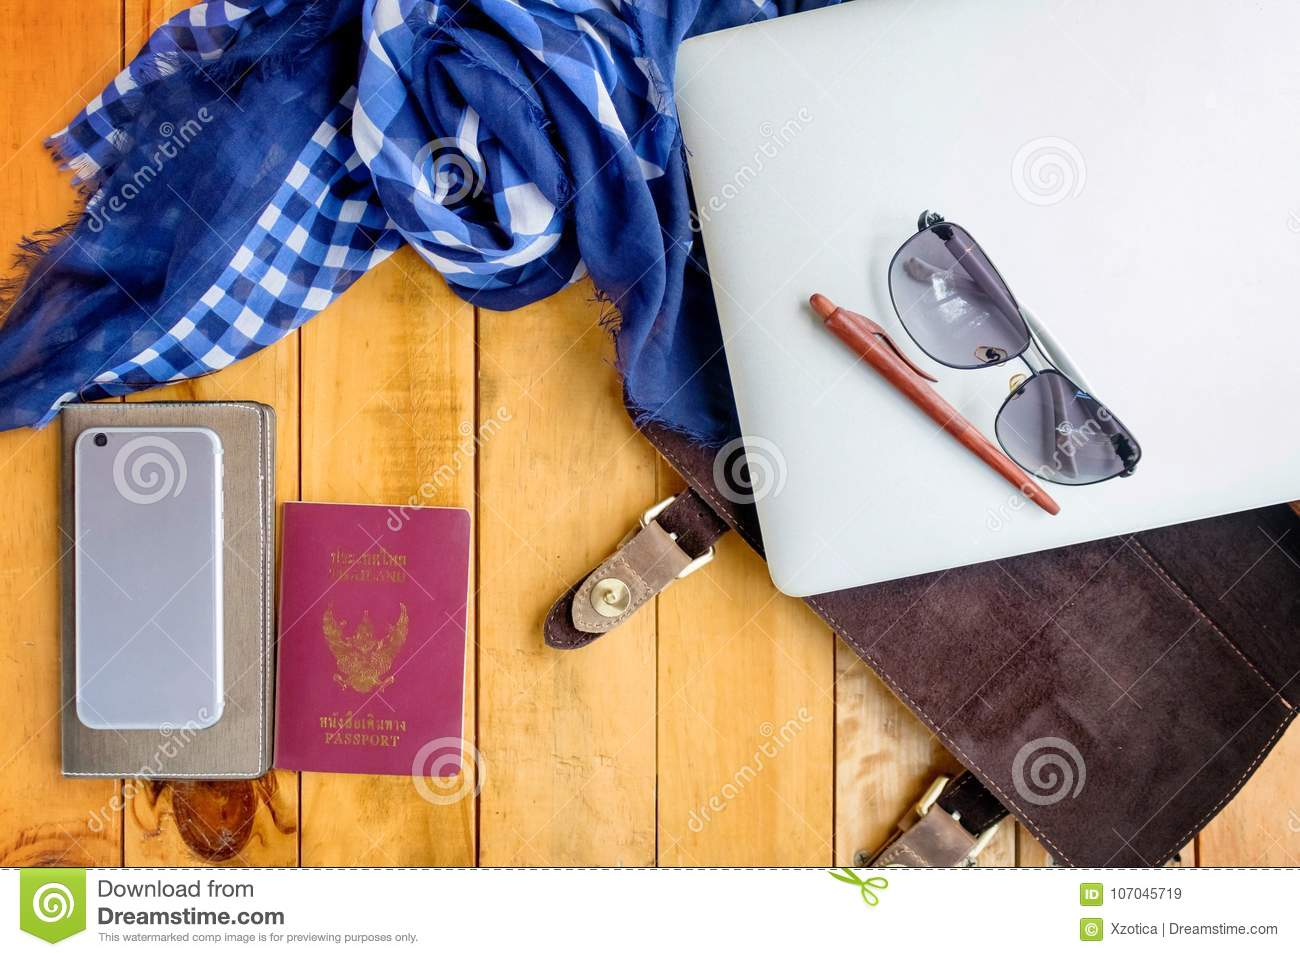 Leather bag notebook and blue check scarf on wood table